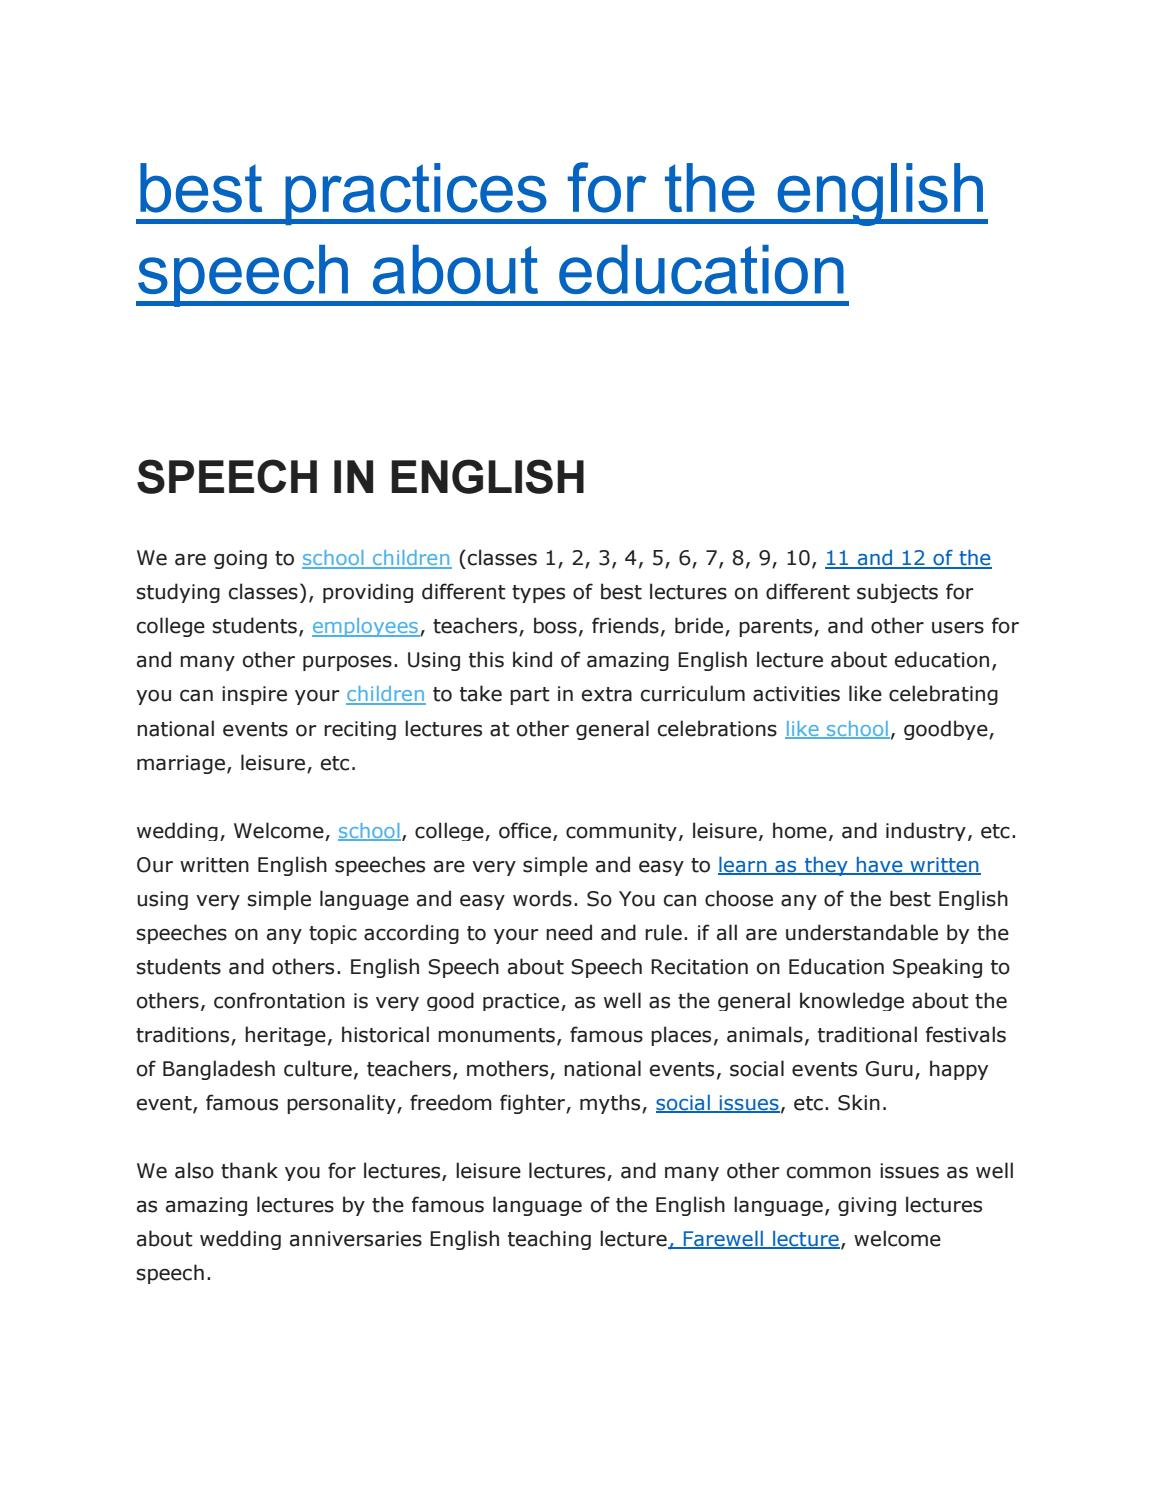 Type my education speech degree initials after name on resume